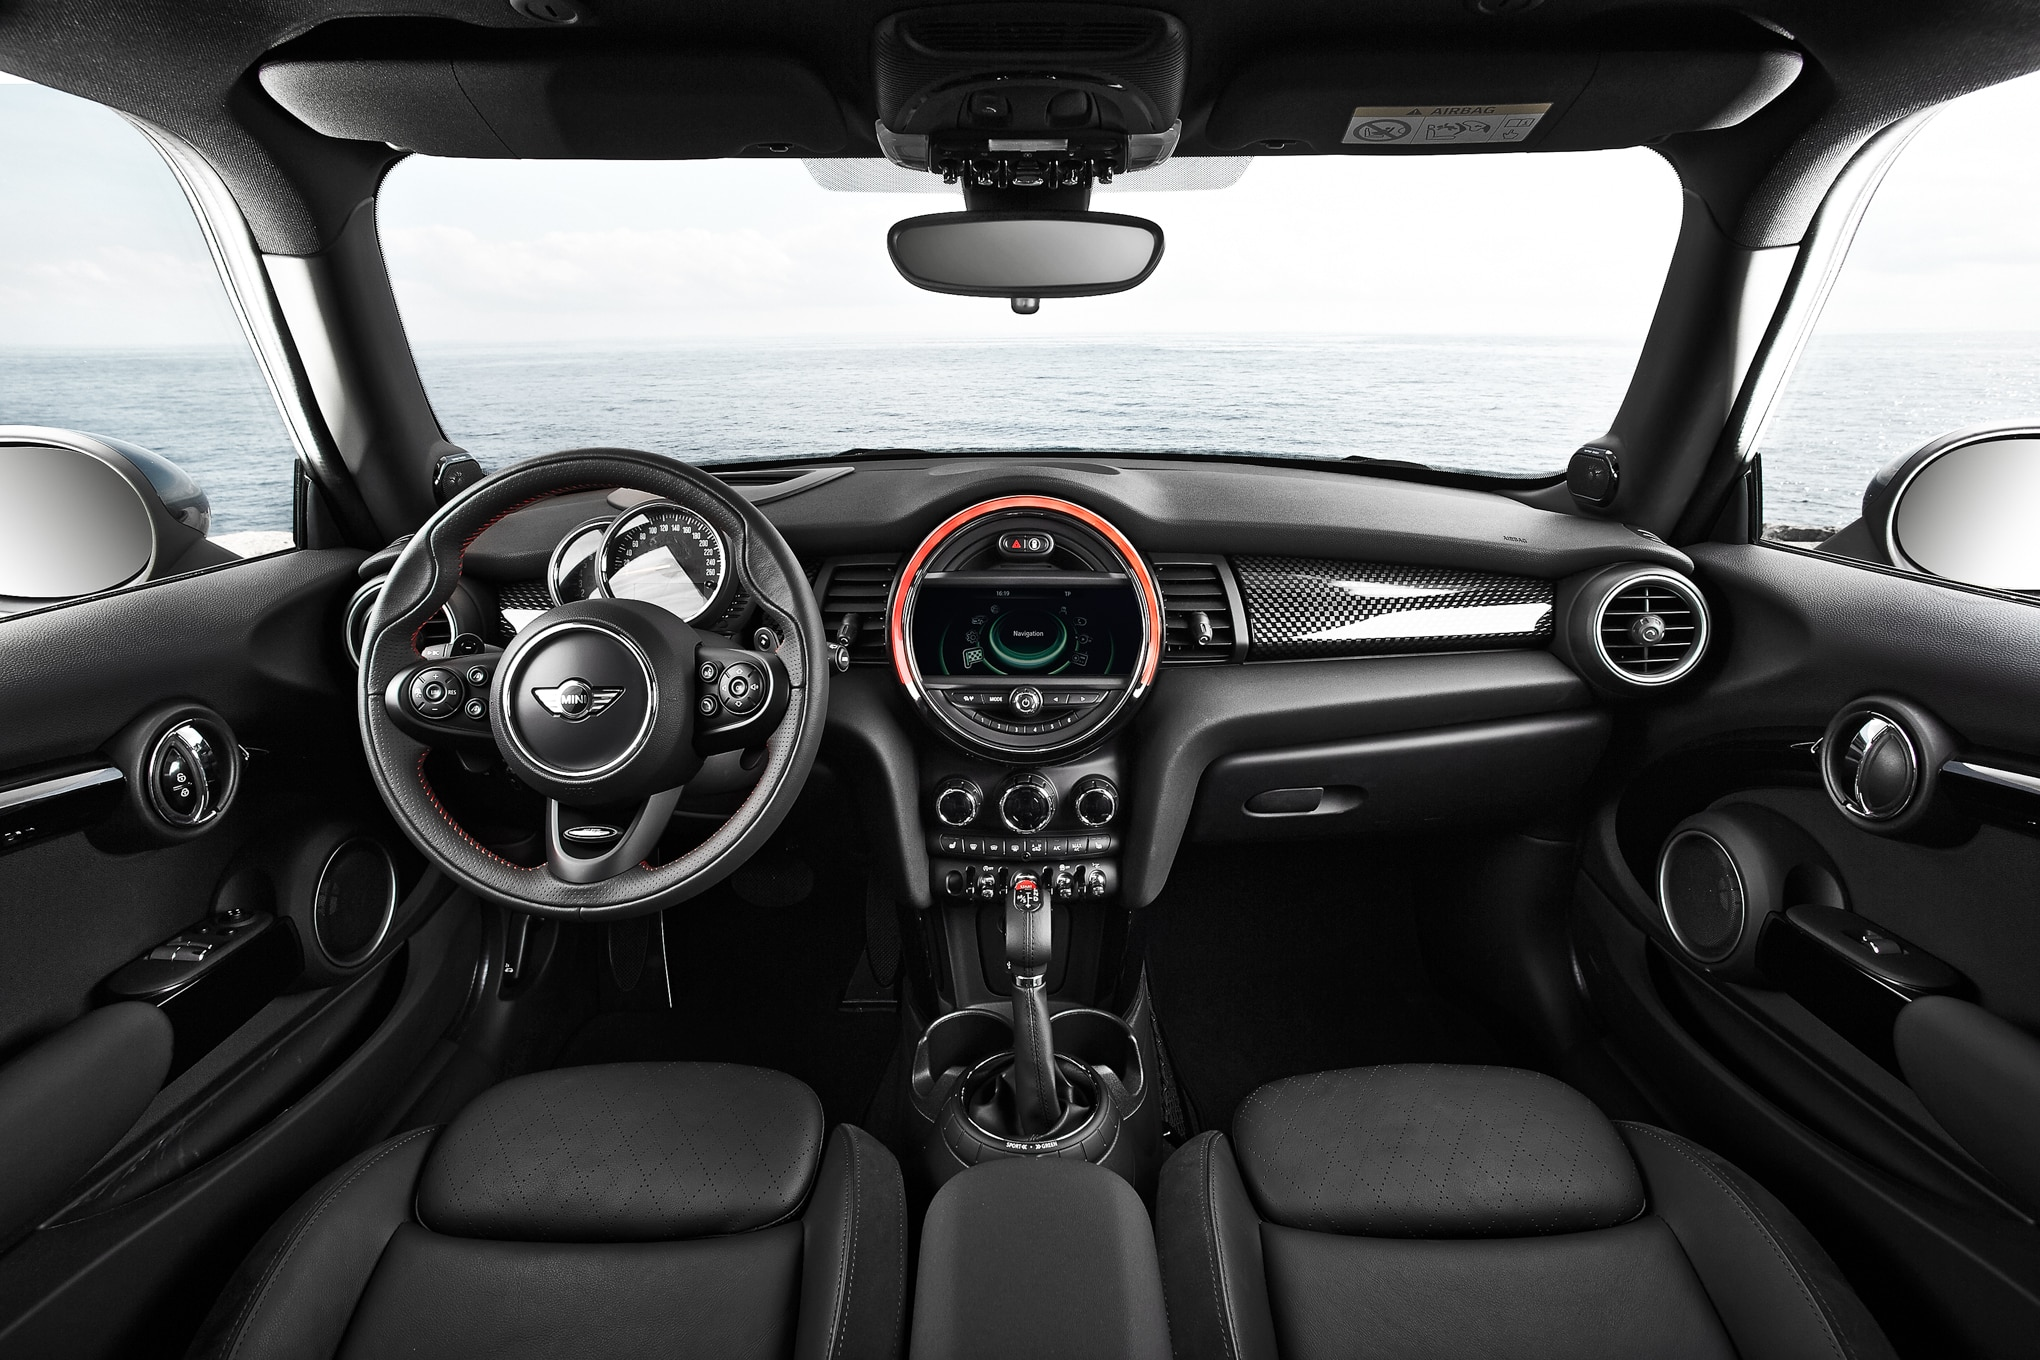 2014 mini cooper 4 door interior. the 2014 mini cooper 4 door interior r